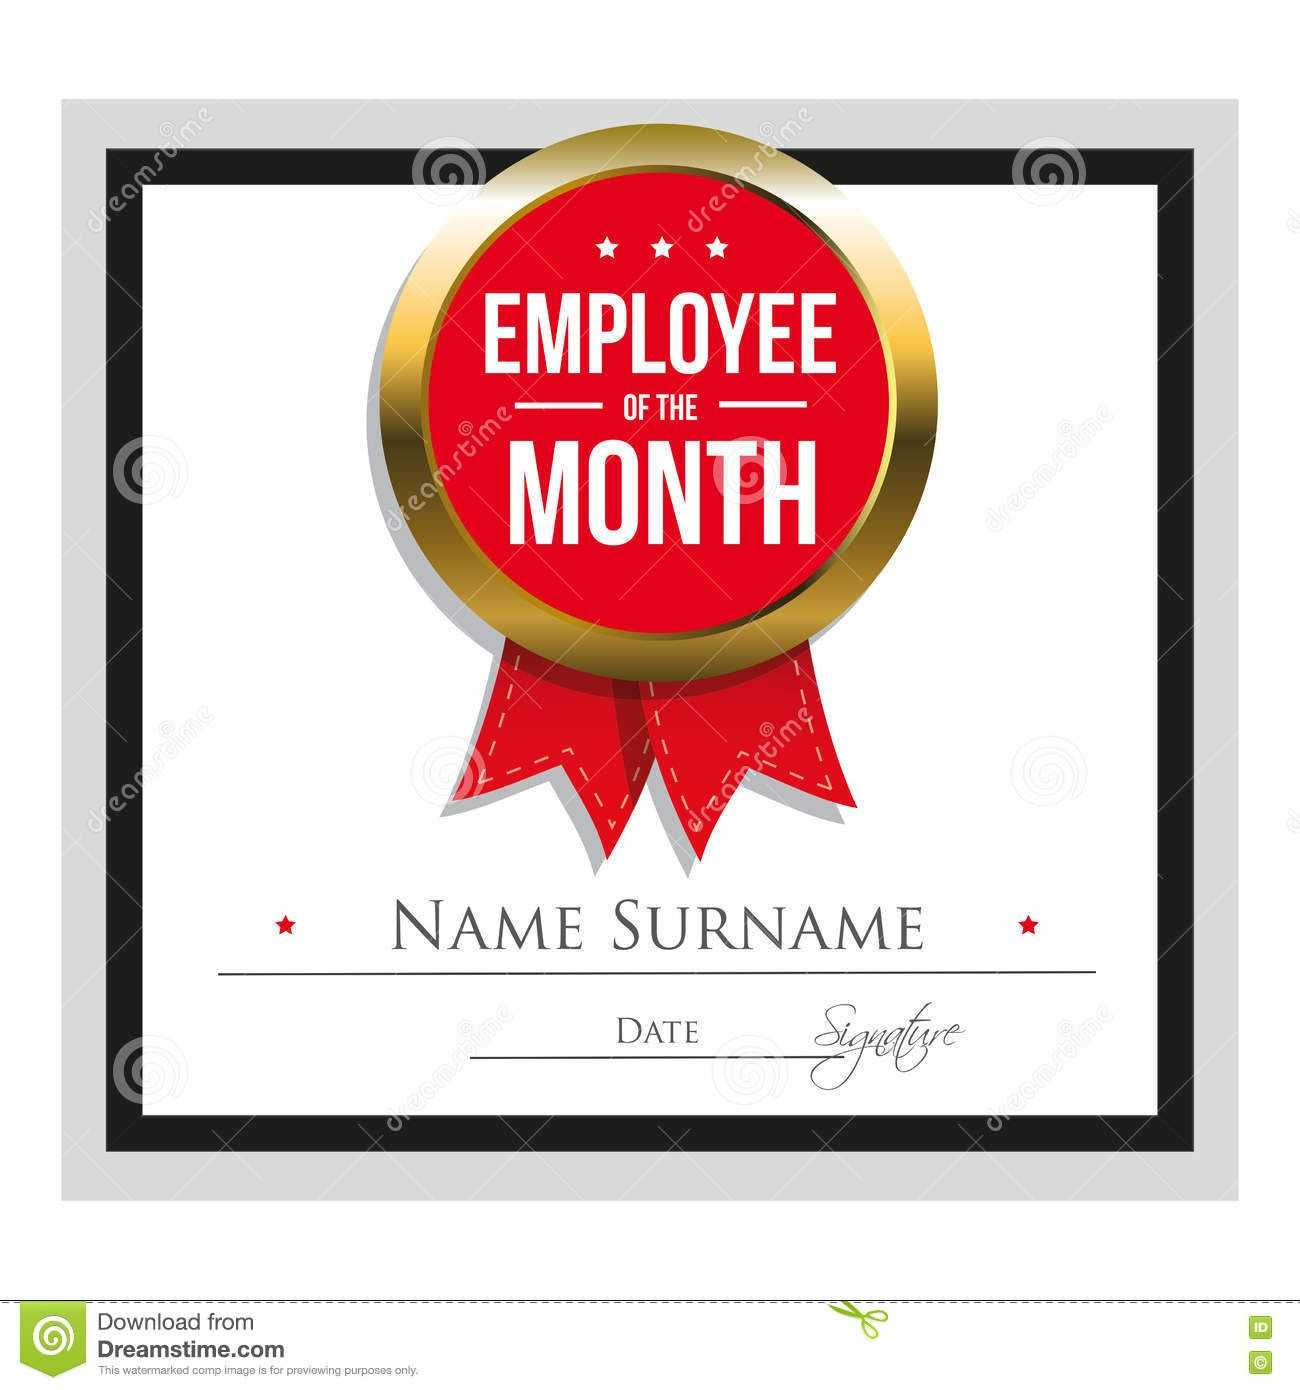 Employee Award Certificate Template Free Templates Design With Manager Of The Month Certificate Template